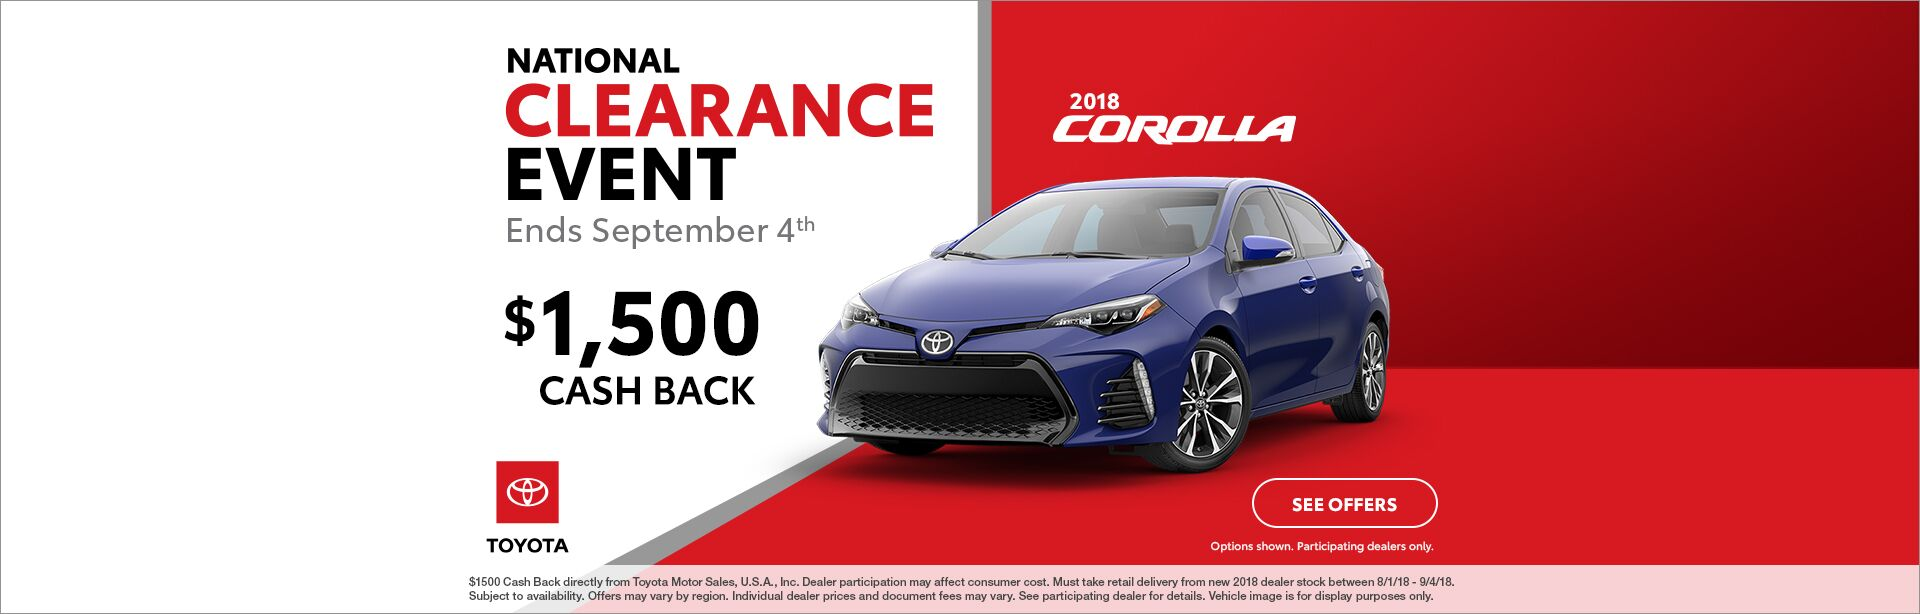 Corolla Cash Back National Clearance Event 2018